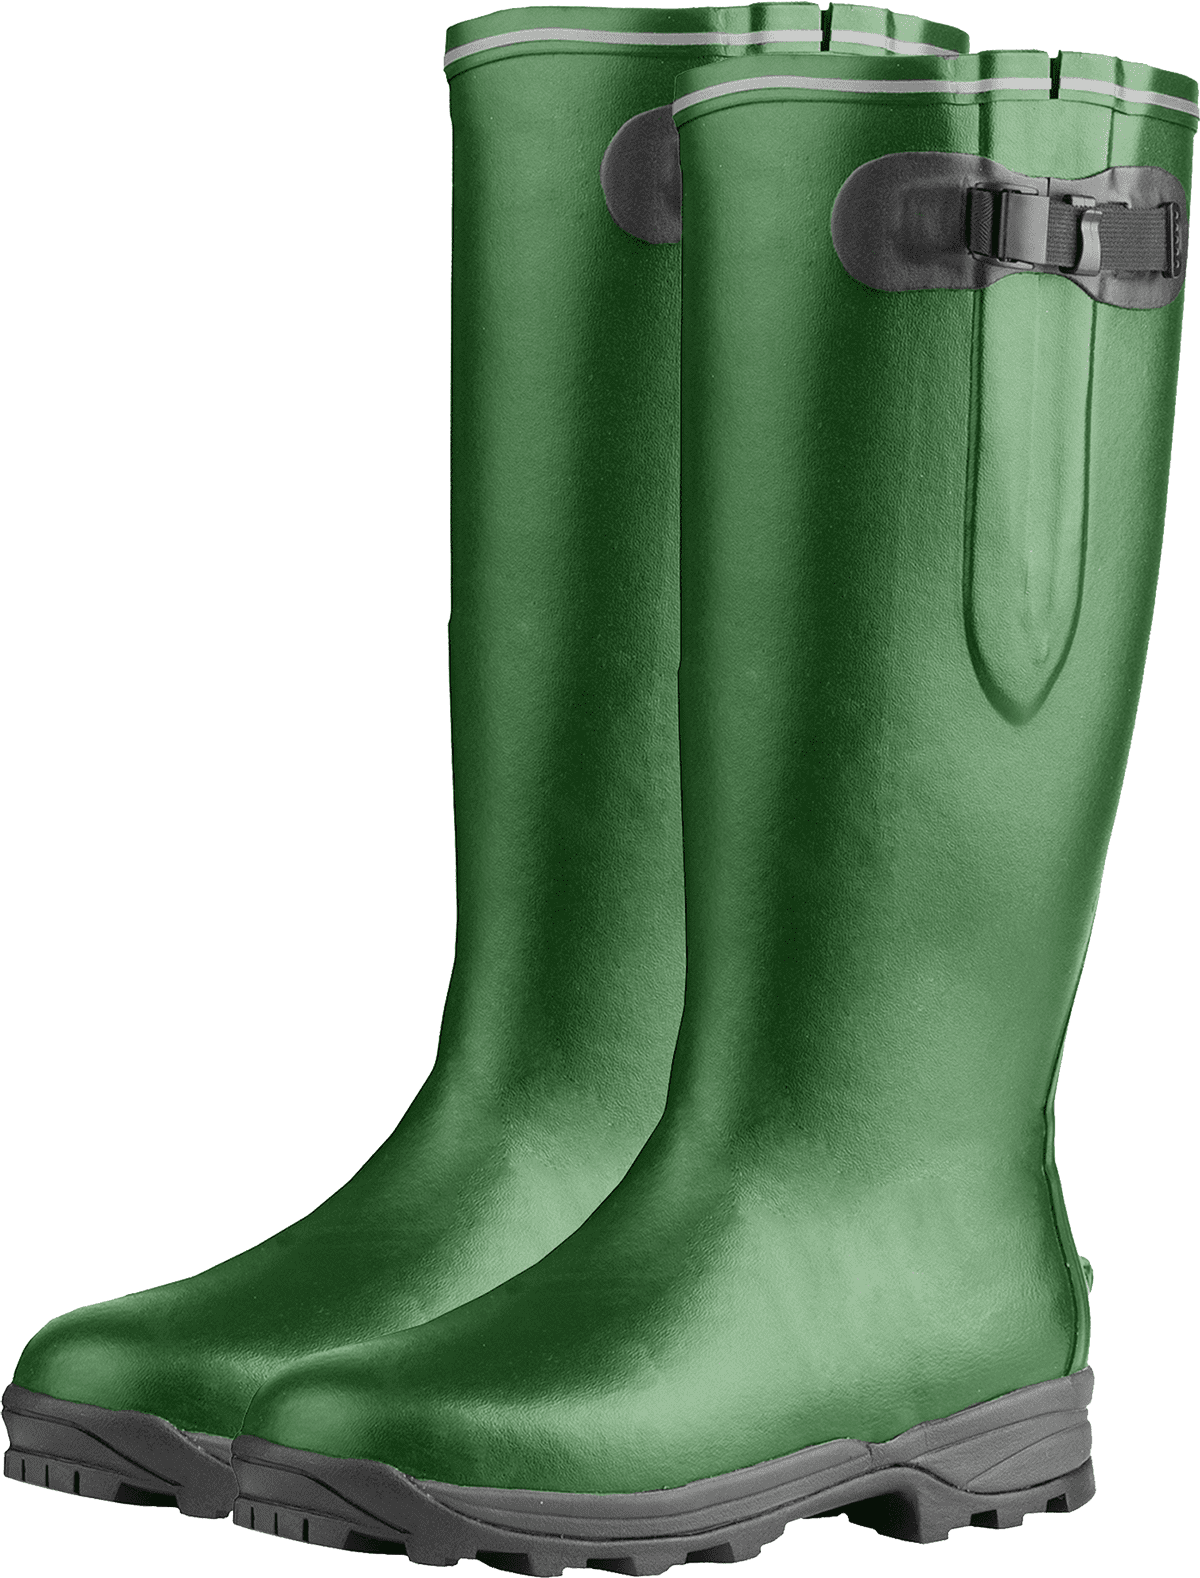 Rubber boots needed to mitigate flood damage in home